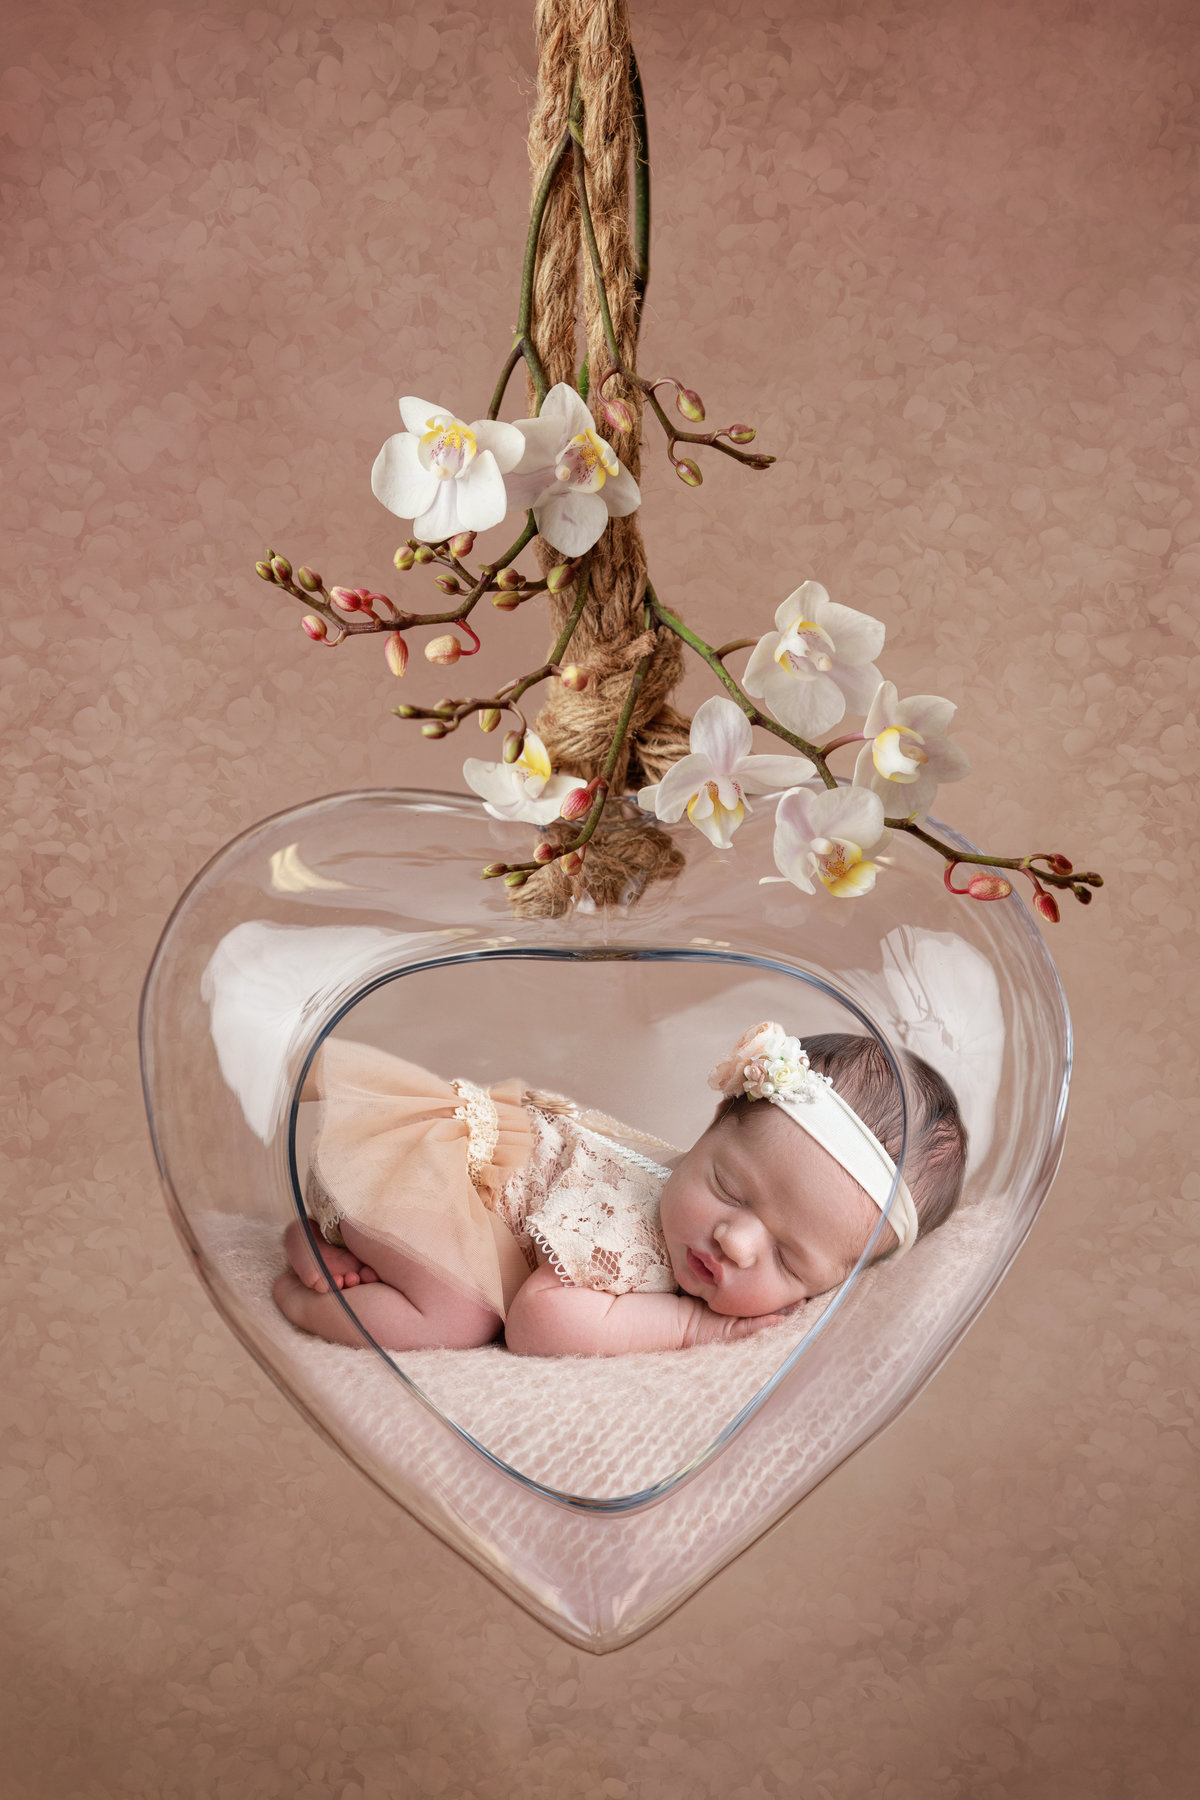 Baby girl lying in a glass heart